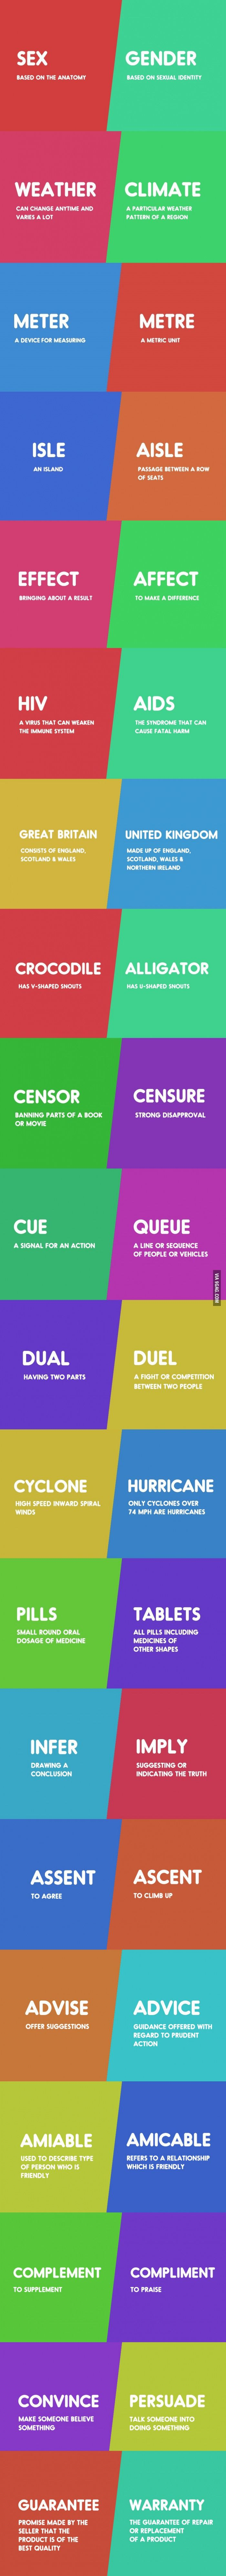 20 Sets Of Words Which Sound Similar But Have Different Meanings // http://9gag.com/gag/a5Kq47y?ref=fbp